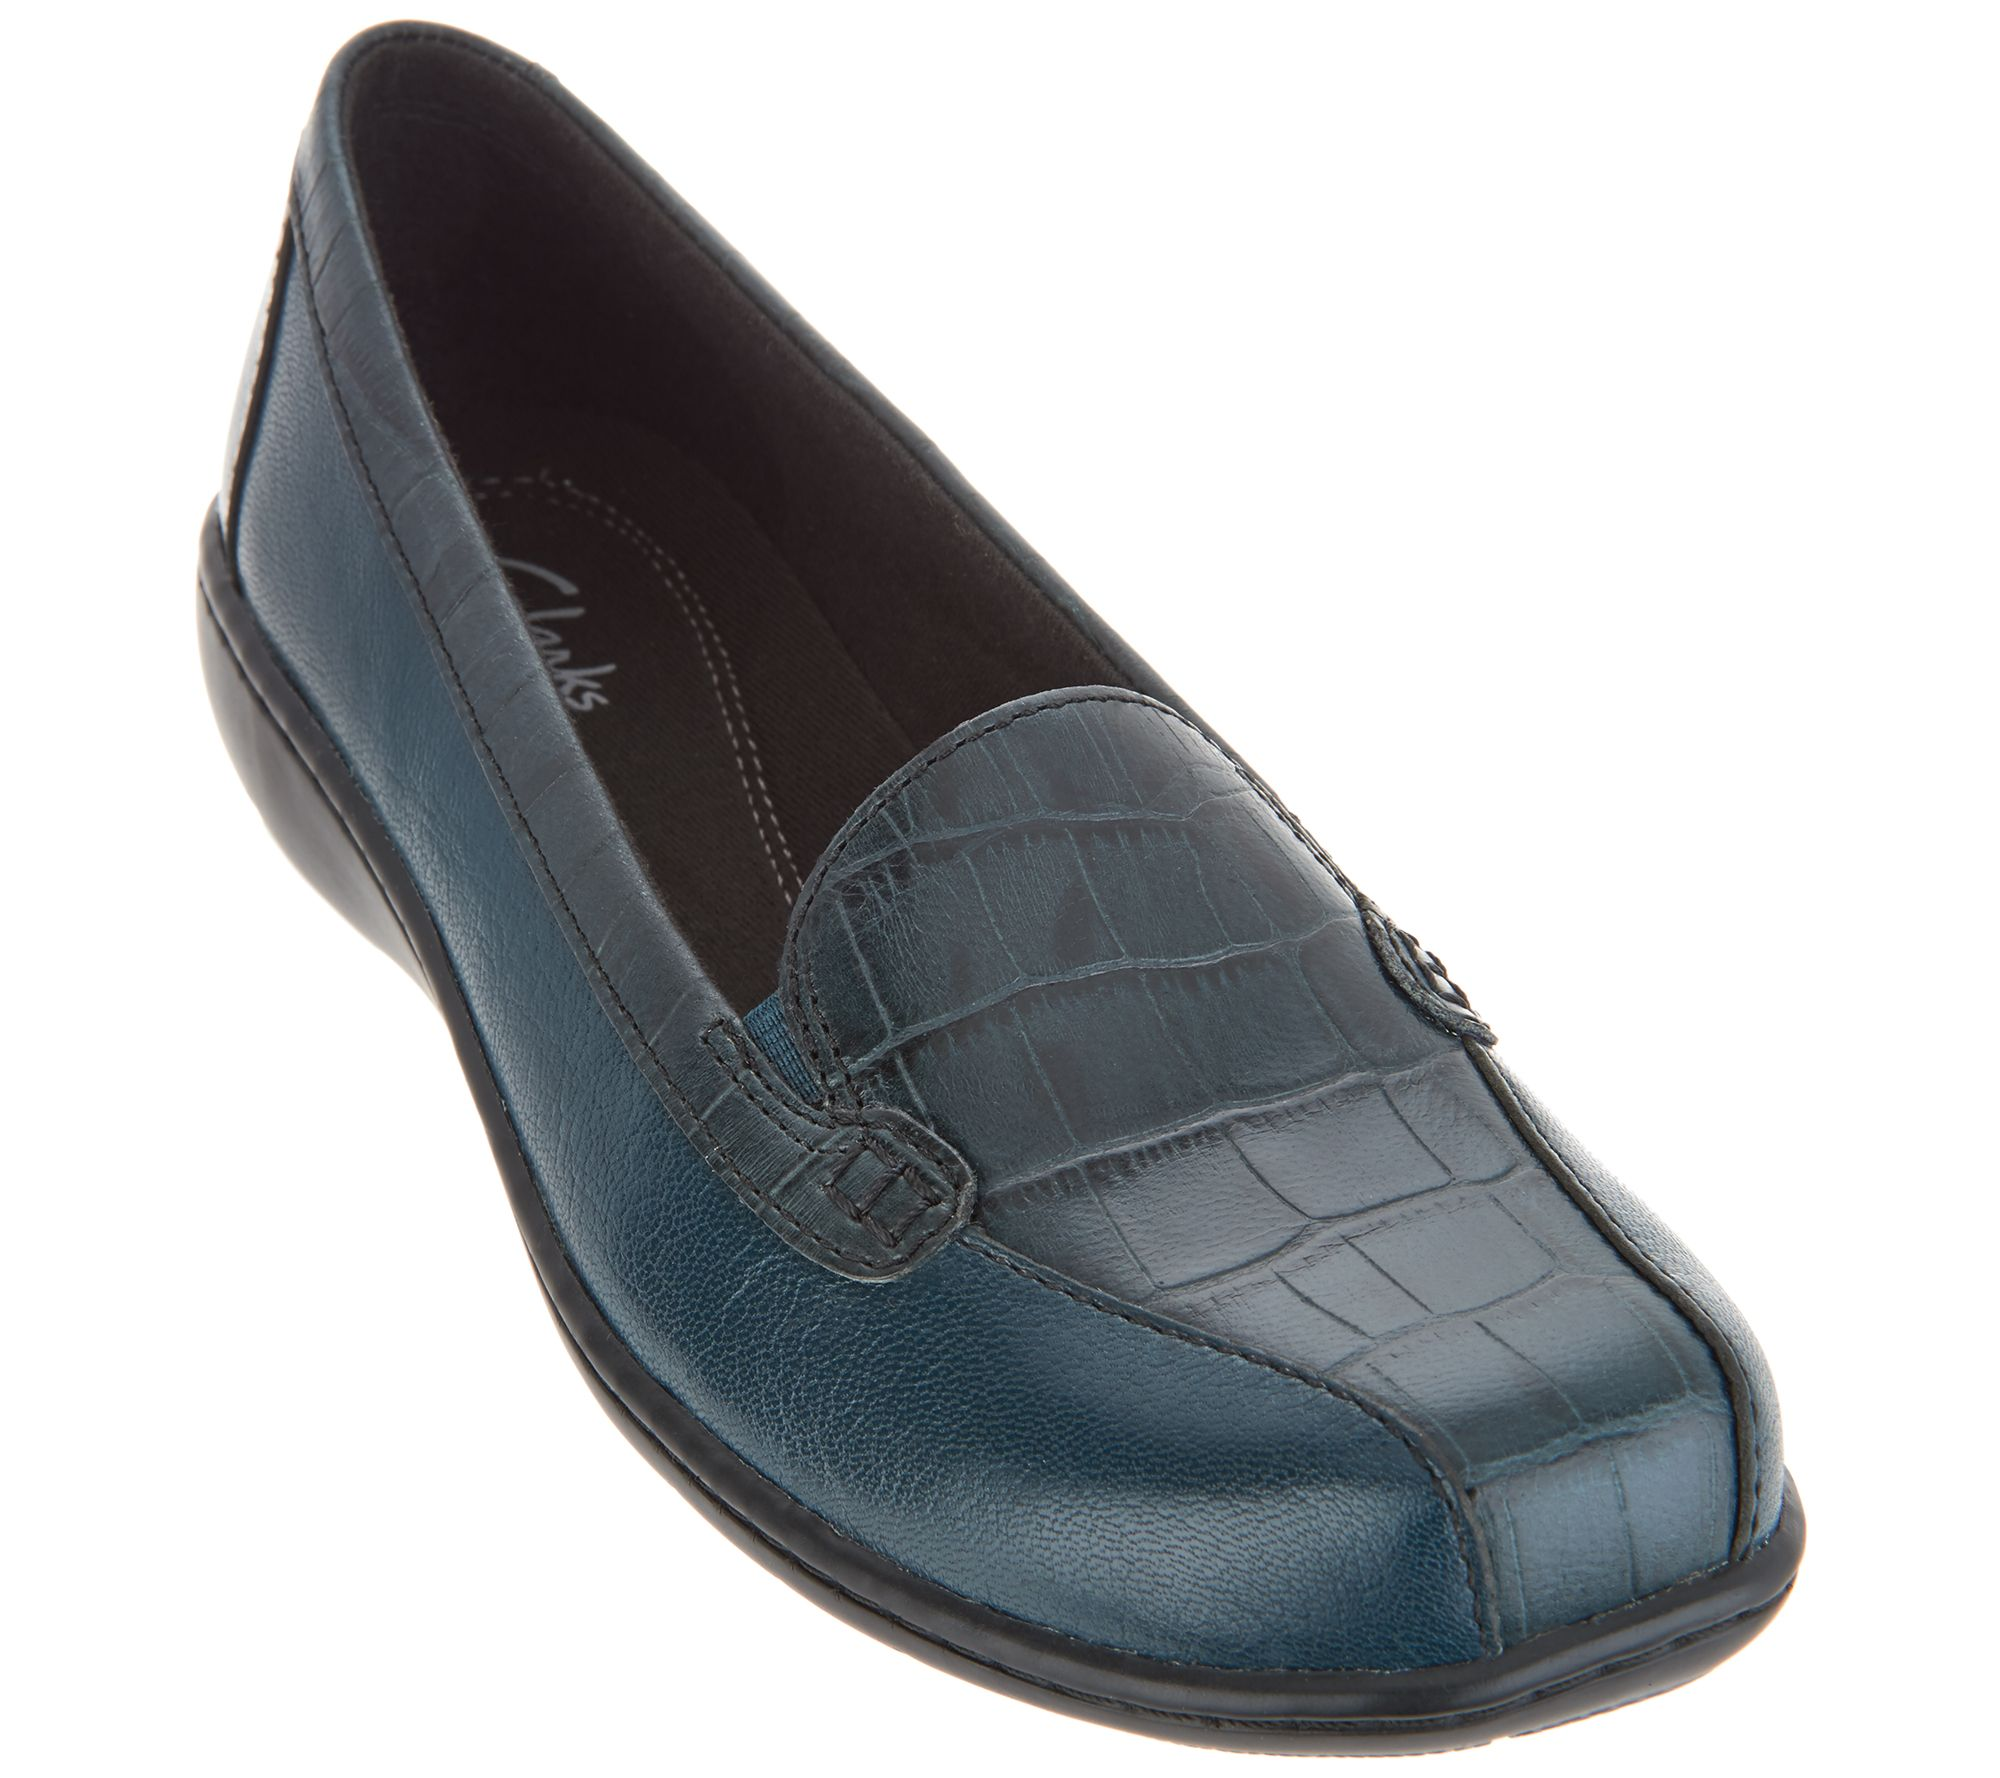 Clarks Bayou Navy Blue Leather /& Croc Emobossed Loafers Flats New